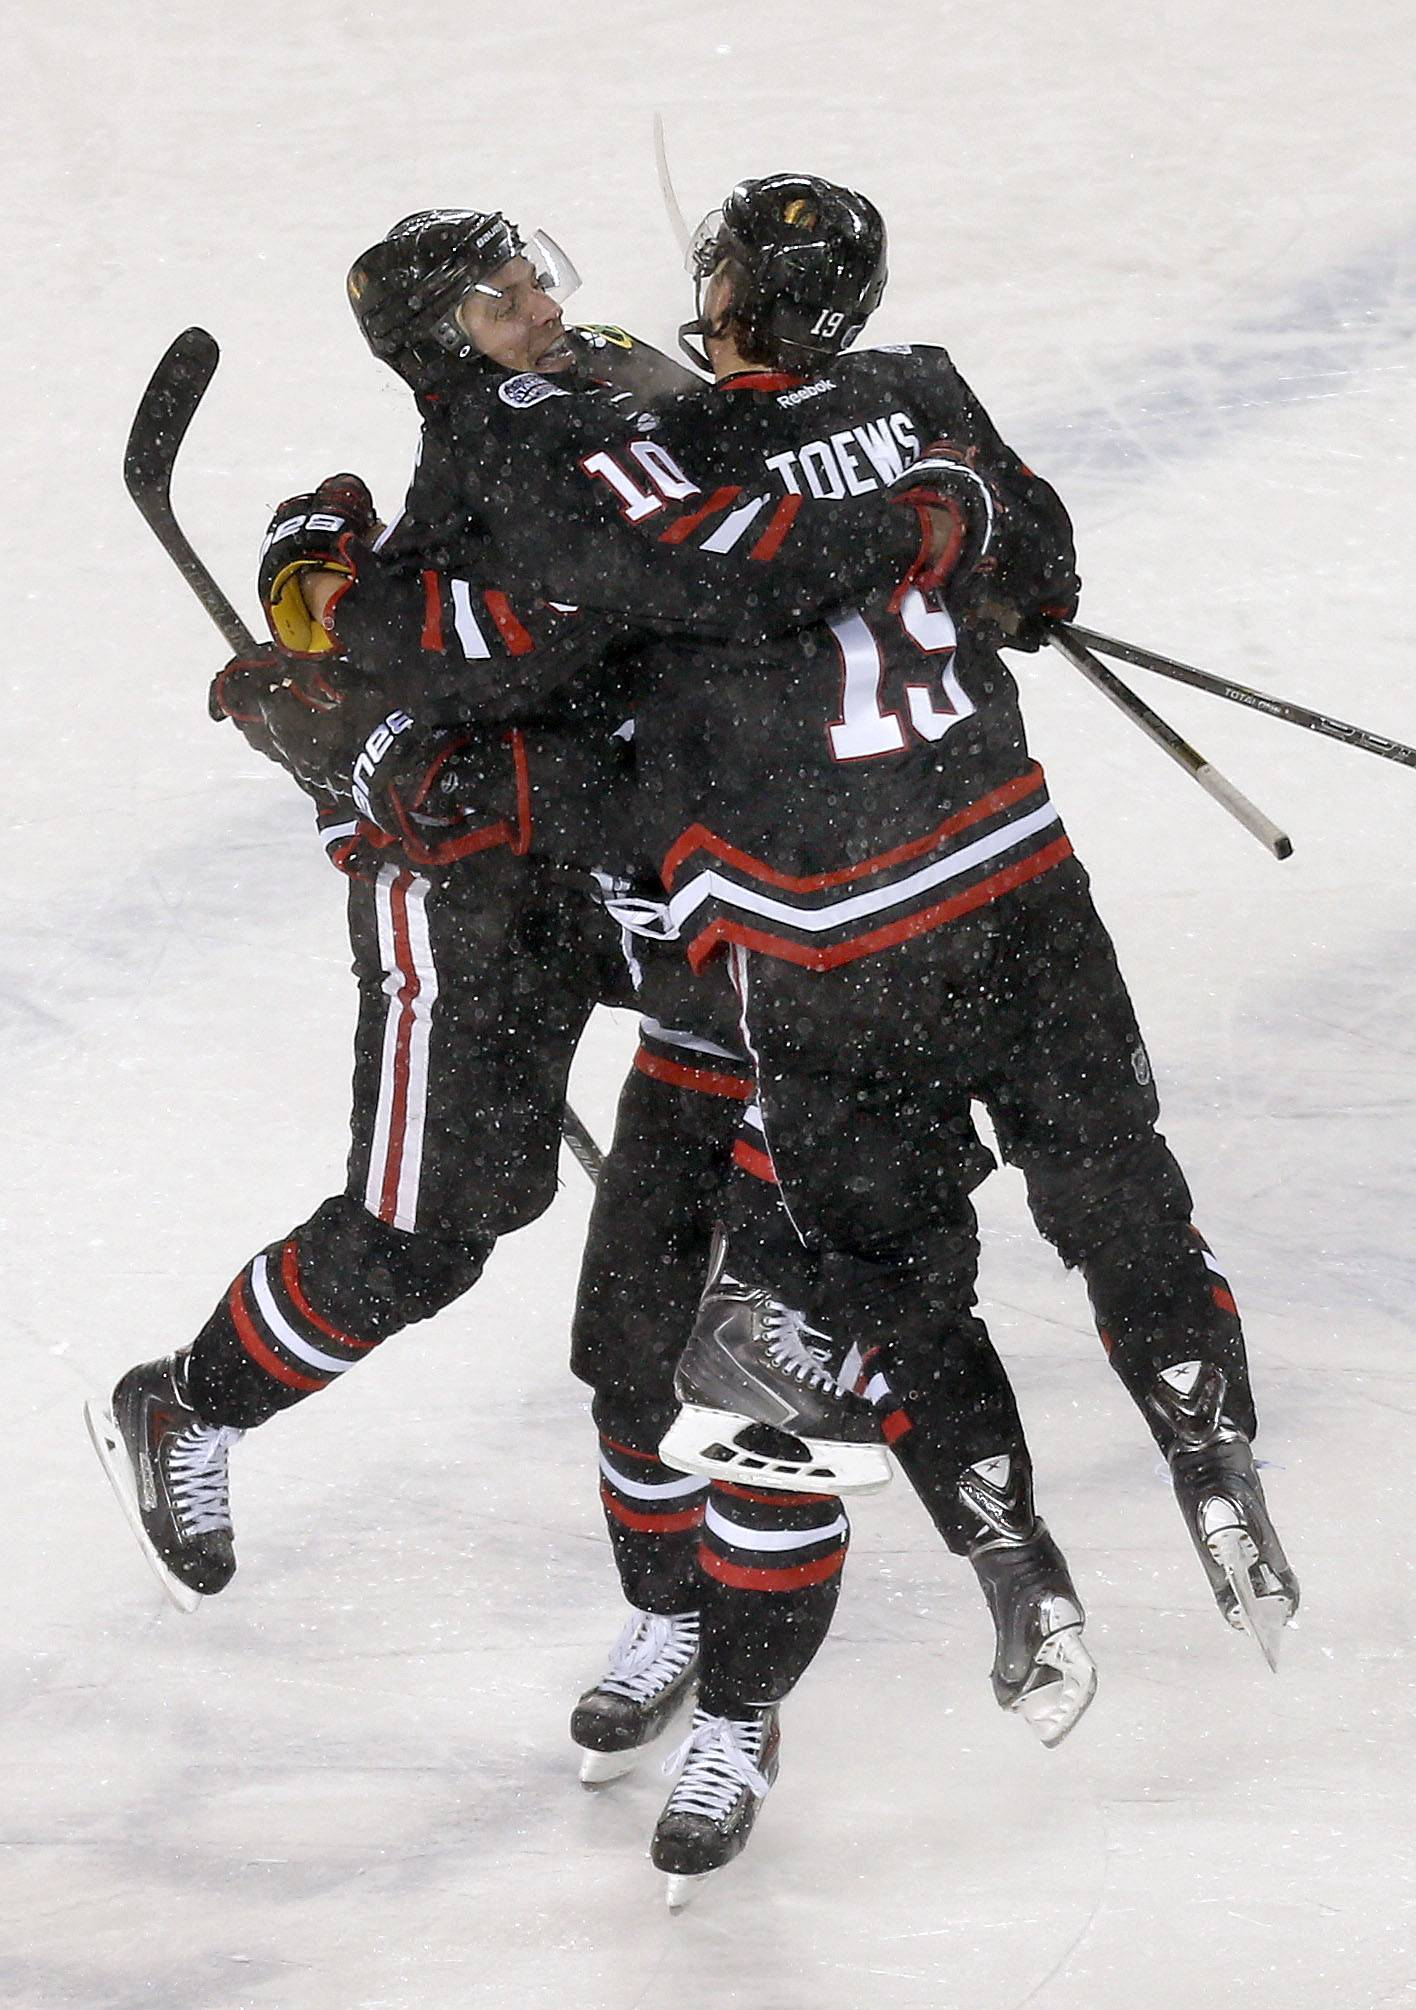 Chicago Blackhawks left wing Patrick Sharp, left, jumps into the arms of Chicago Blackhawks center Jonathan Toews after scoring in the first period during the NHL Stadium Series between the Blackhawks and the Penguins Saturday at Soldier Field.